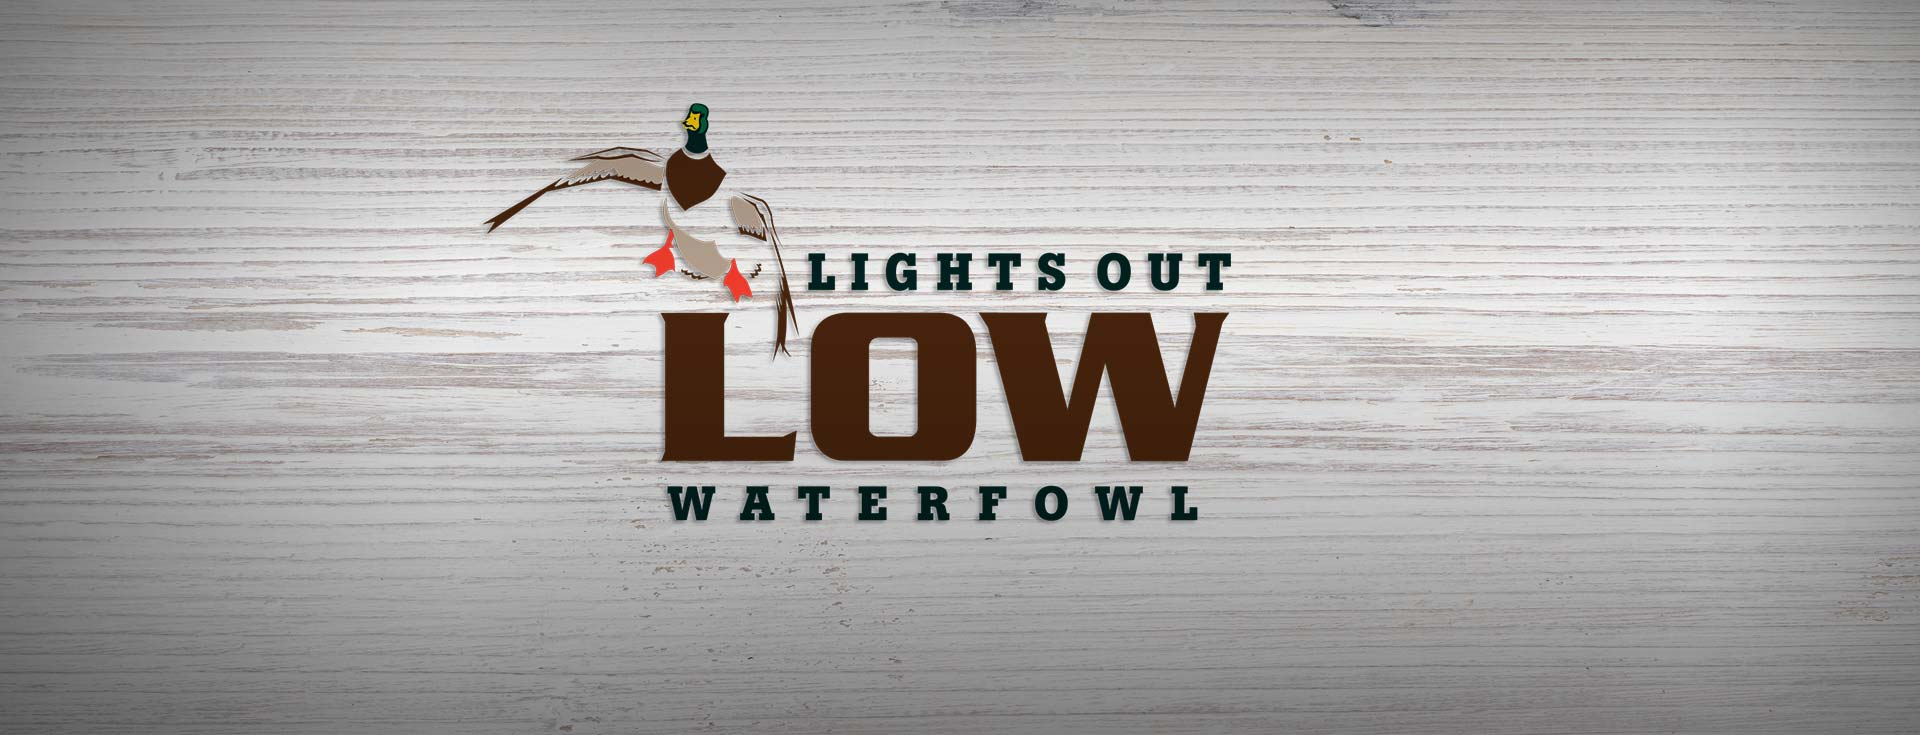 Lights Out Waterfowl Downloads